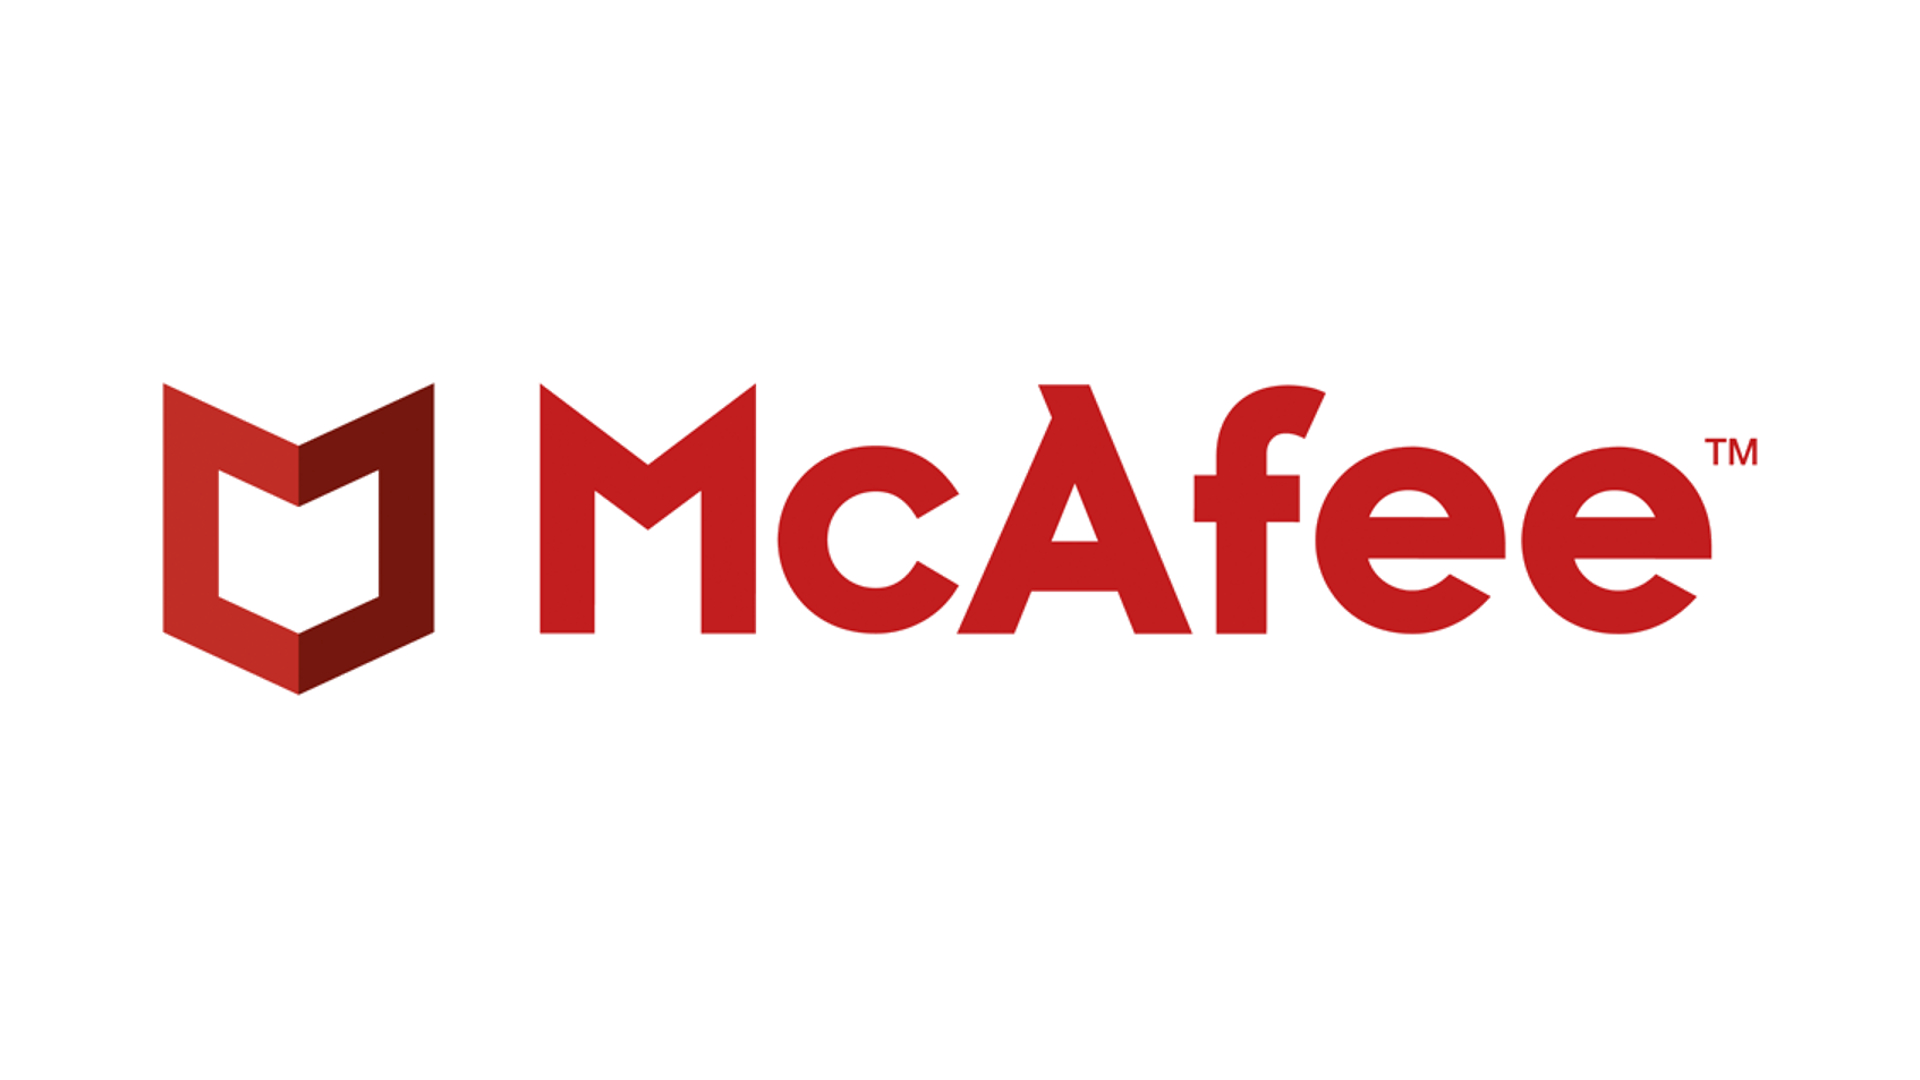 Buy McAfee Antivirus so you can fully protect